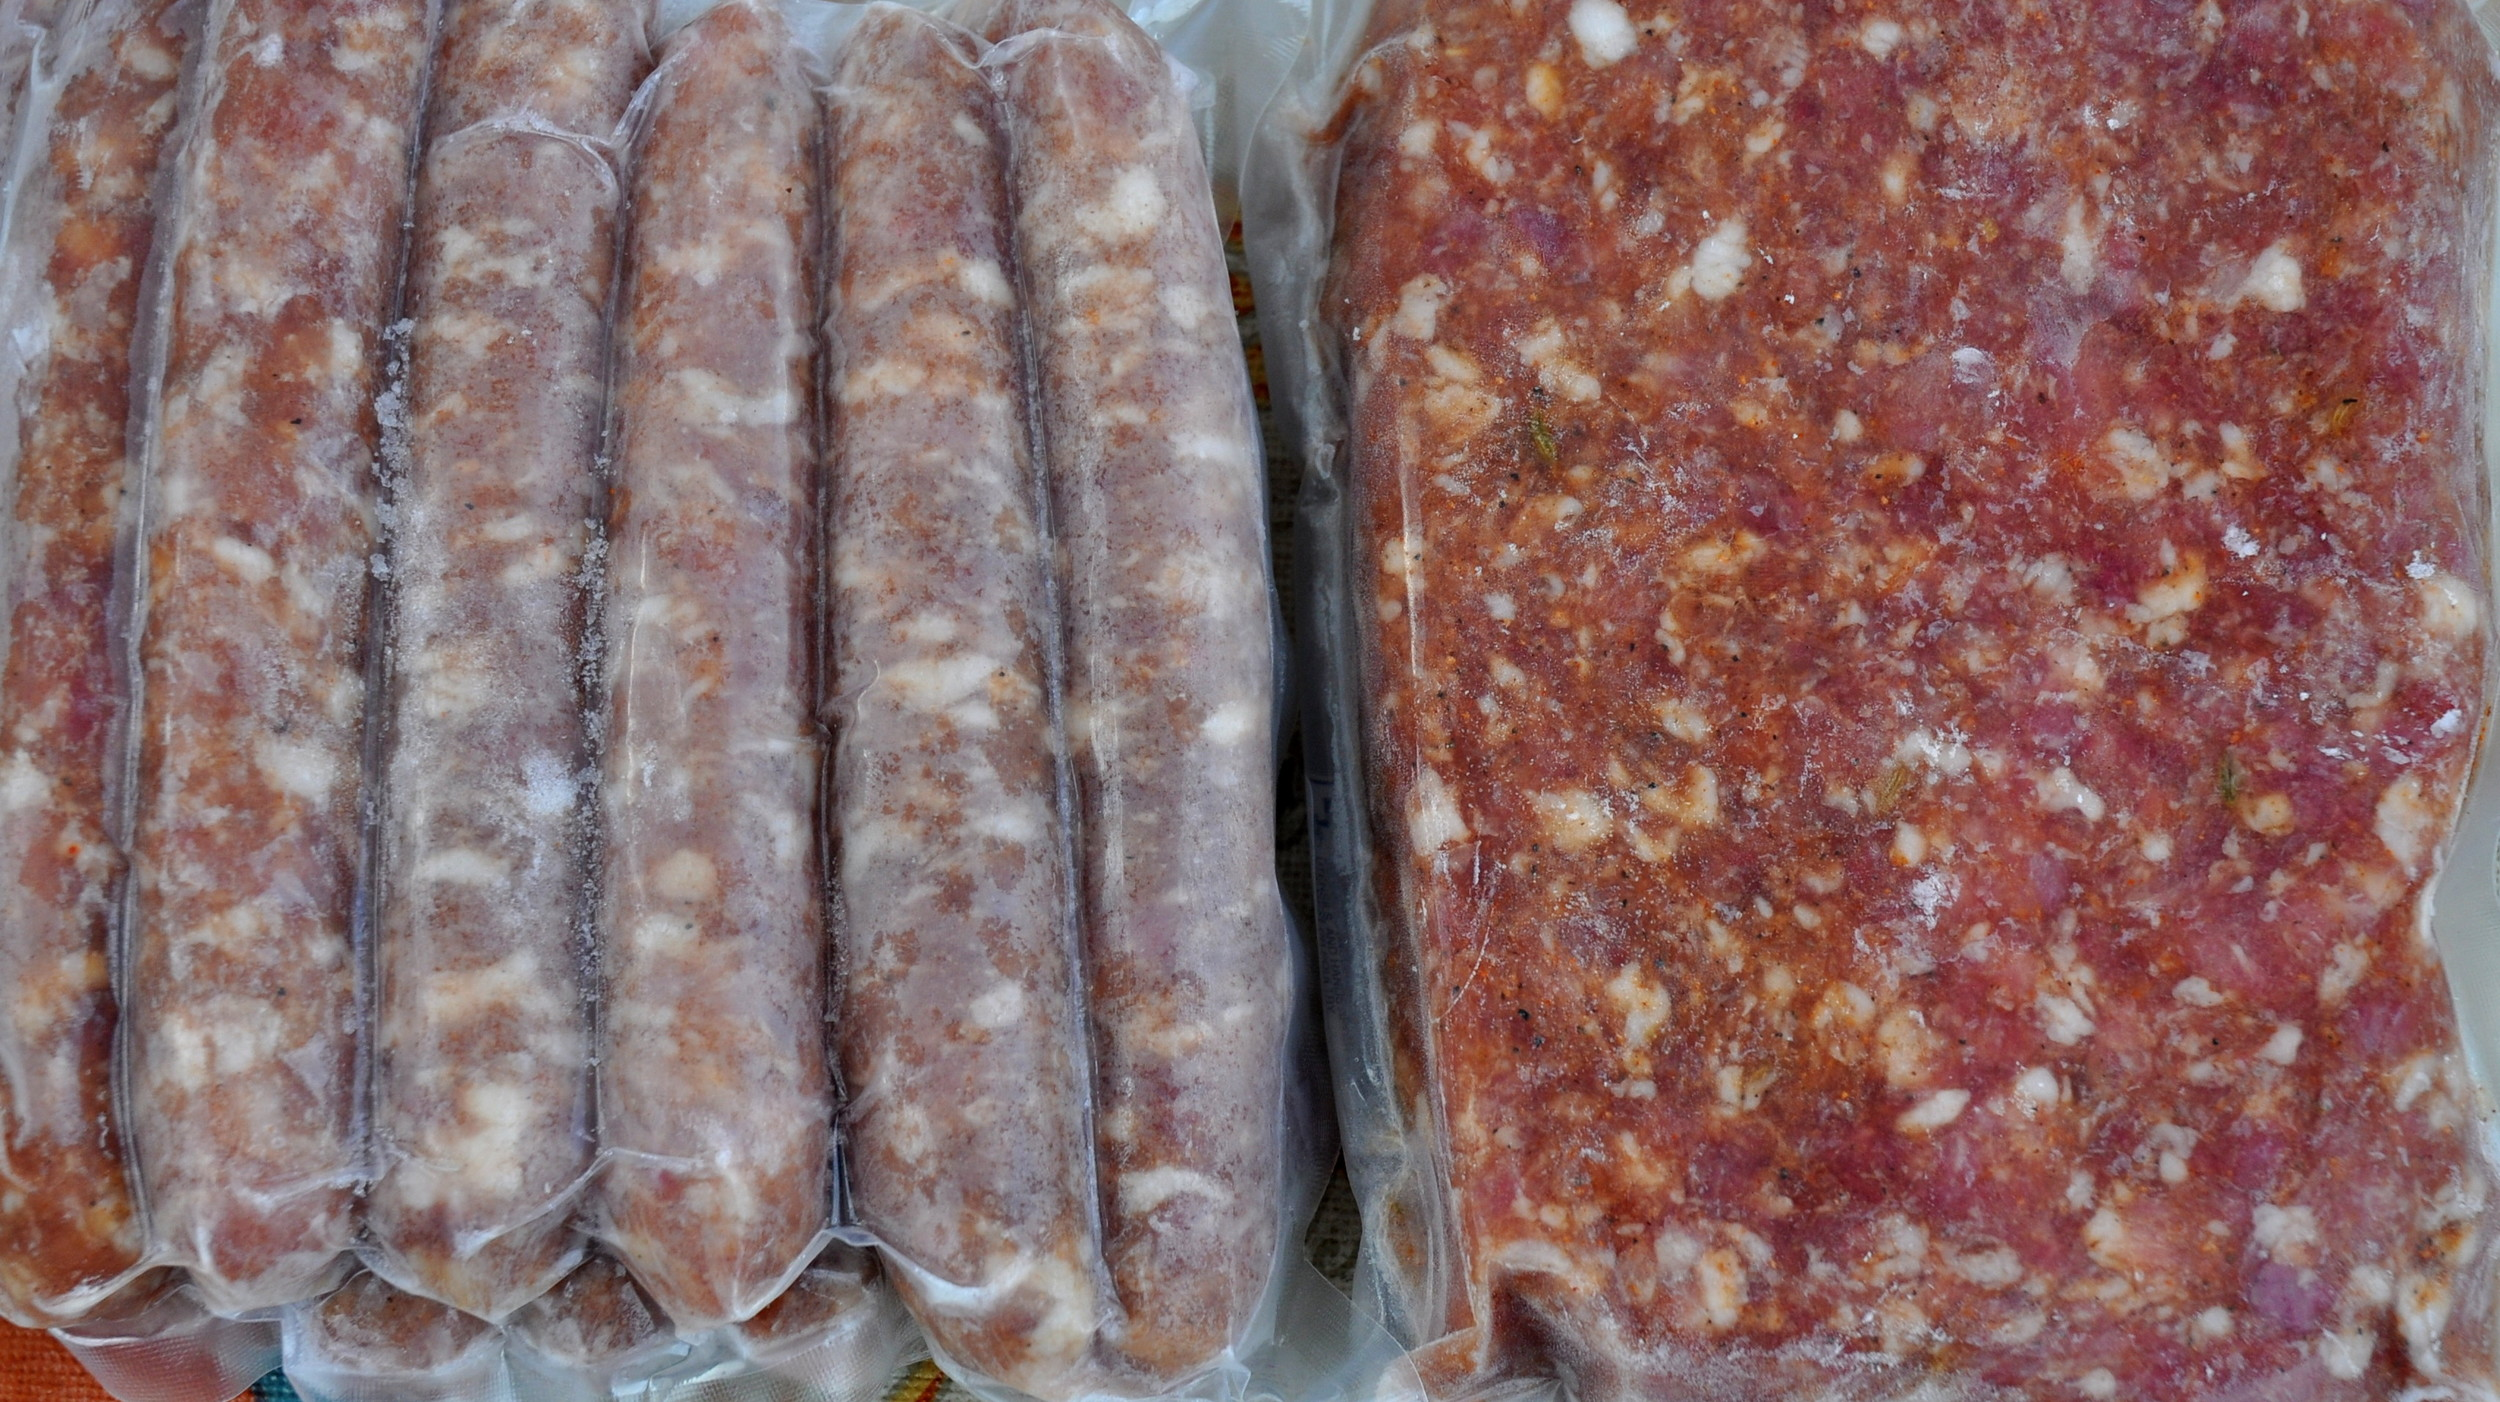 Pork-apple Breakfast links and bulk sweet Italian sausage from Sky Valley Family Farm. Copyright Zachary D. Lyons.